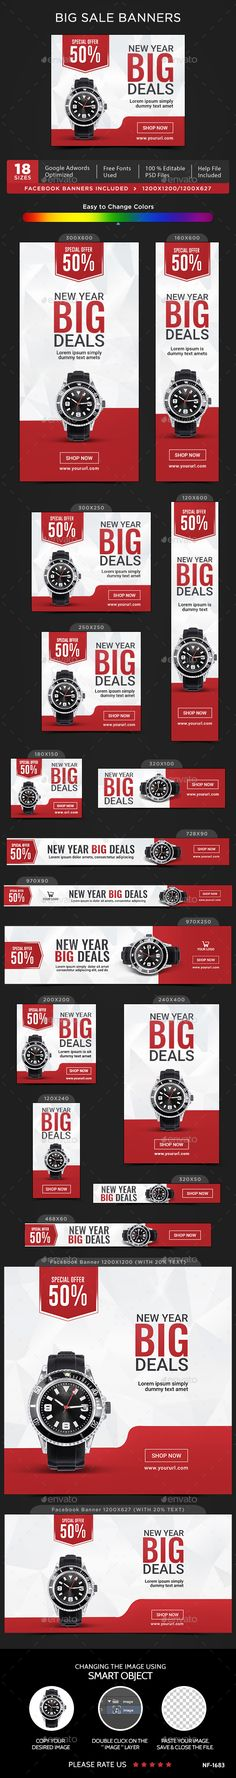 Big Sale Banners Template PSD #ads